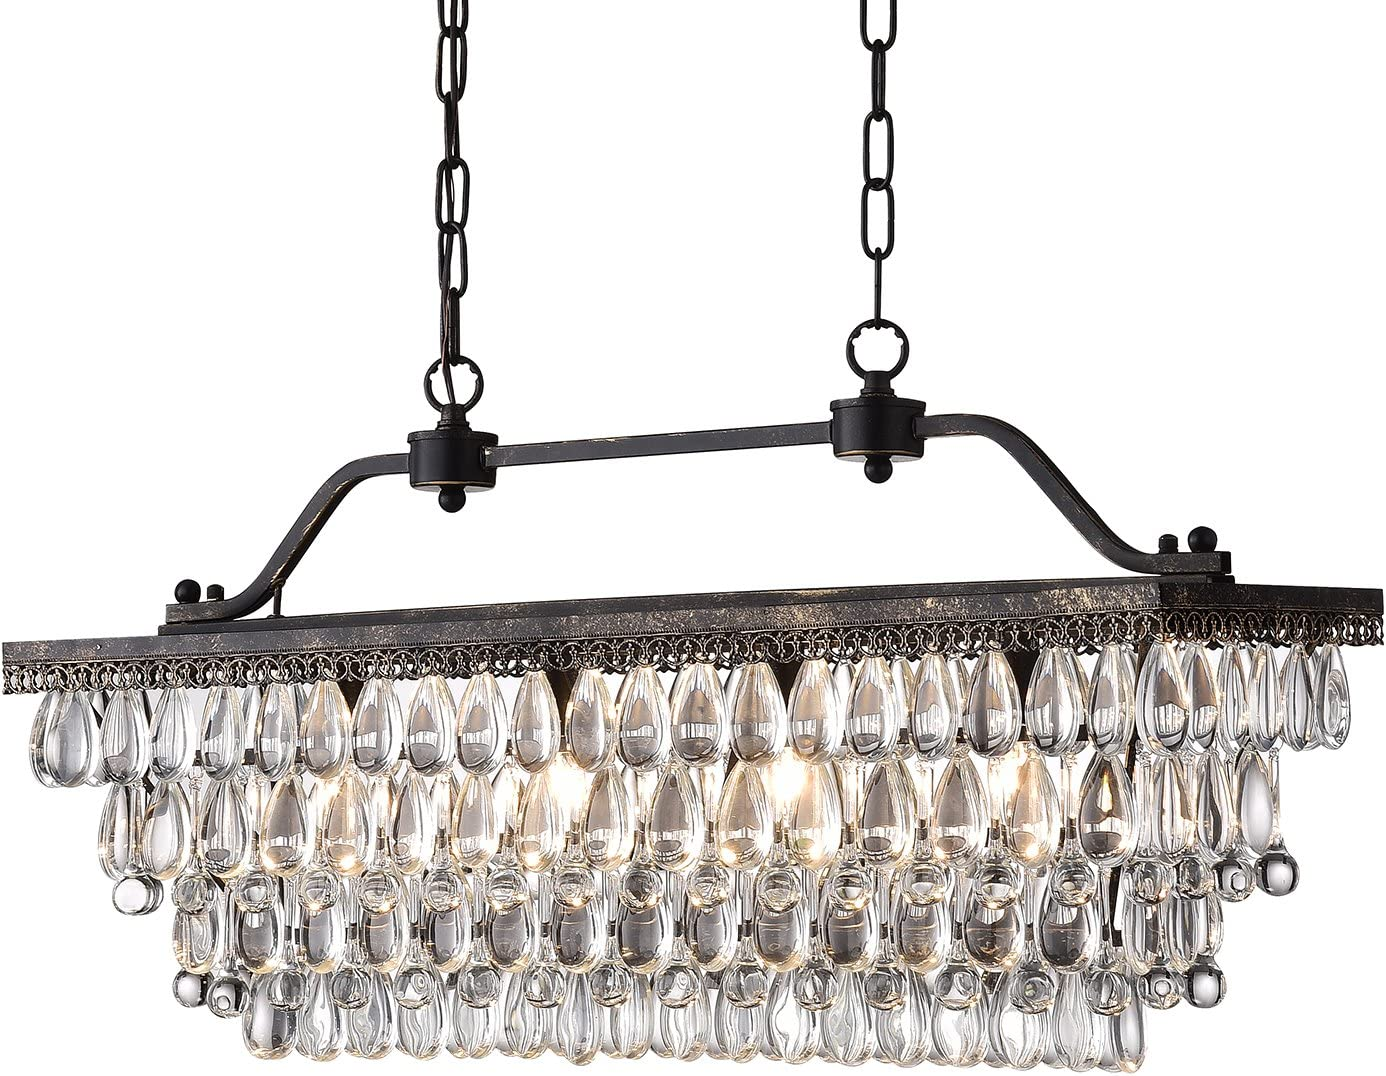 Edvivi 4-Light Antique Bronze Rectangular Linear Crystal Chandelier Dining Room Ceiling Fixture Glam Lighting